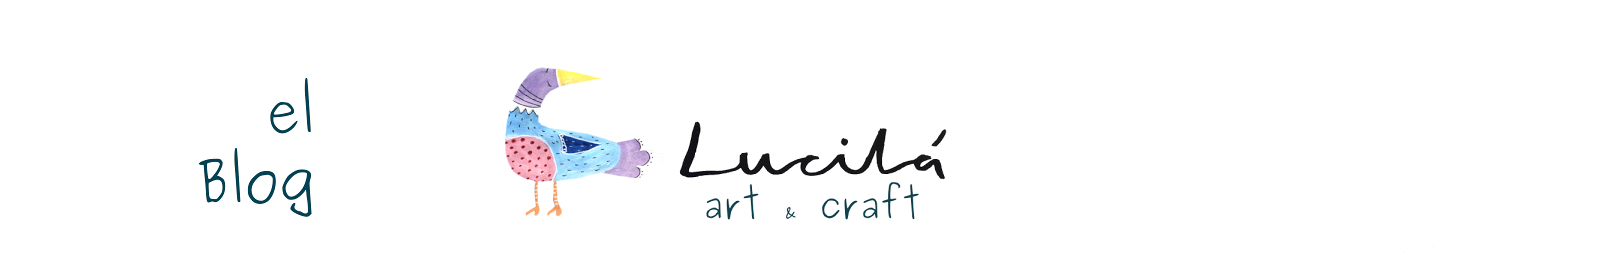 LuciLá art & craft